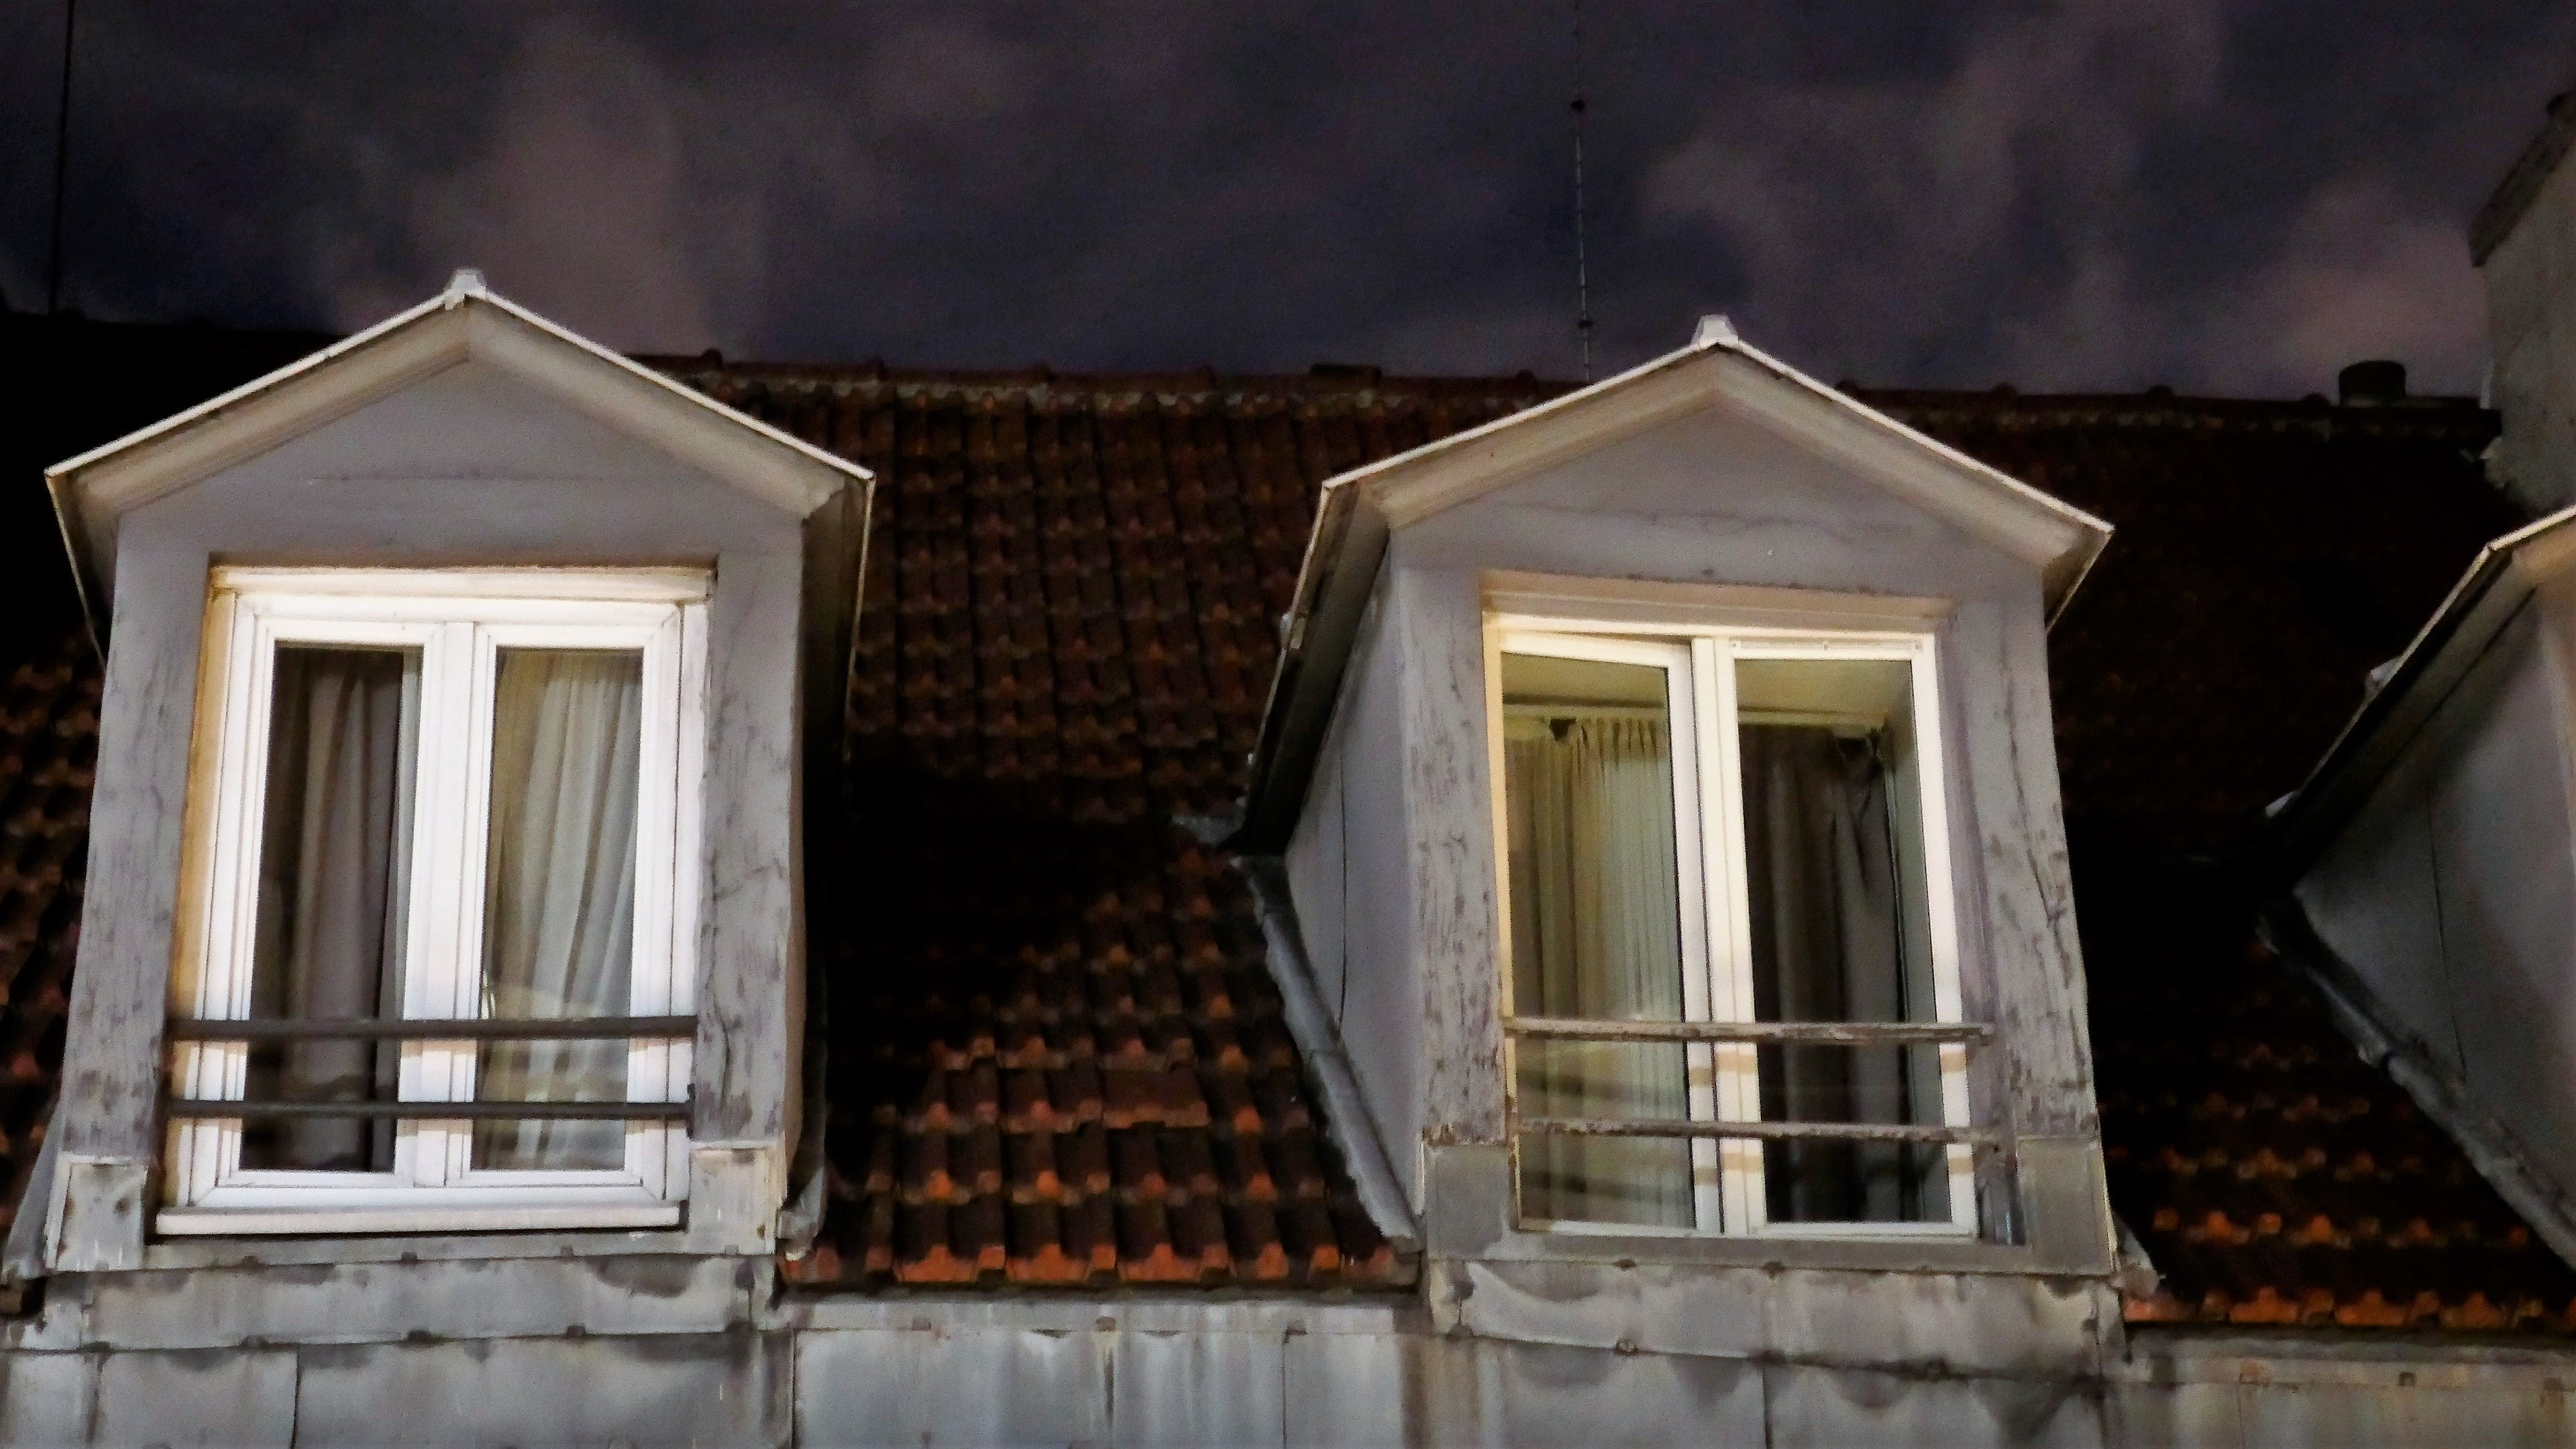 Free stock photo of Night view on typical mansard roof in Paris